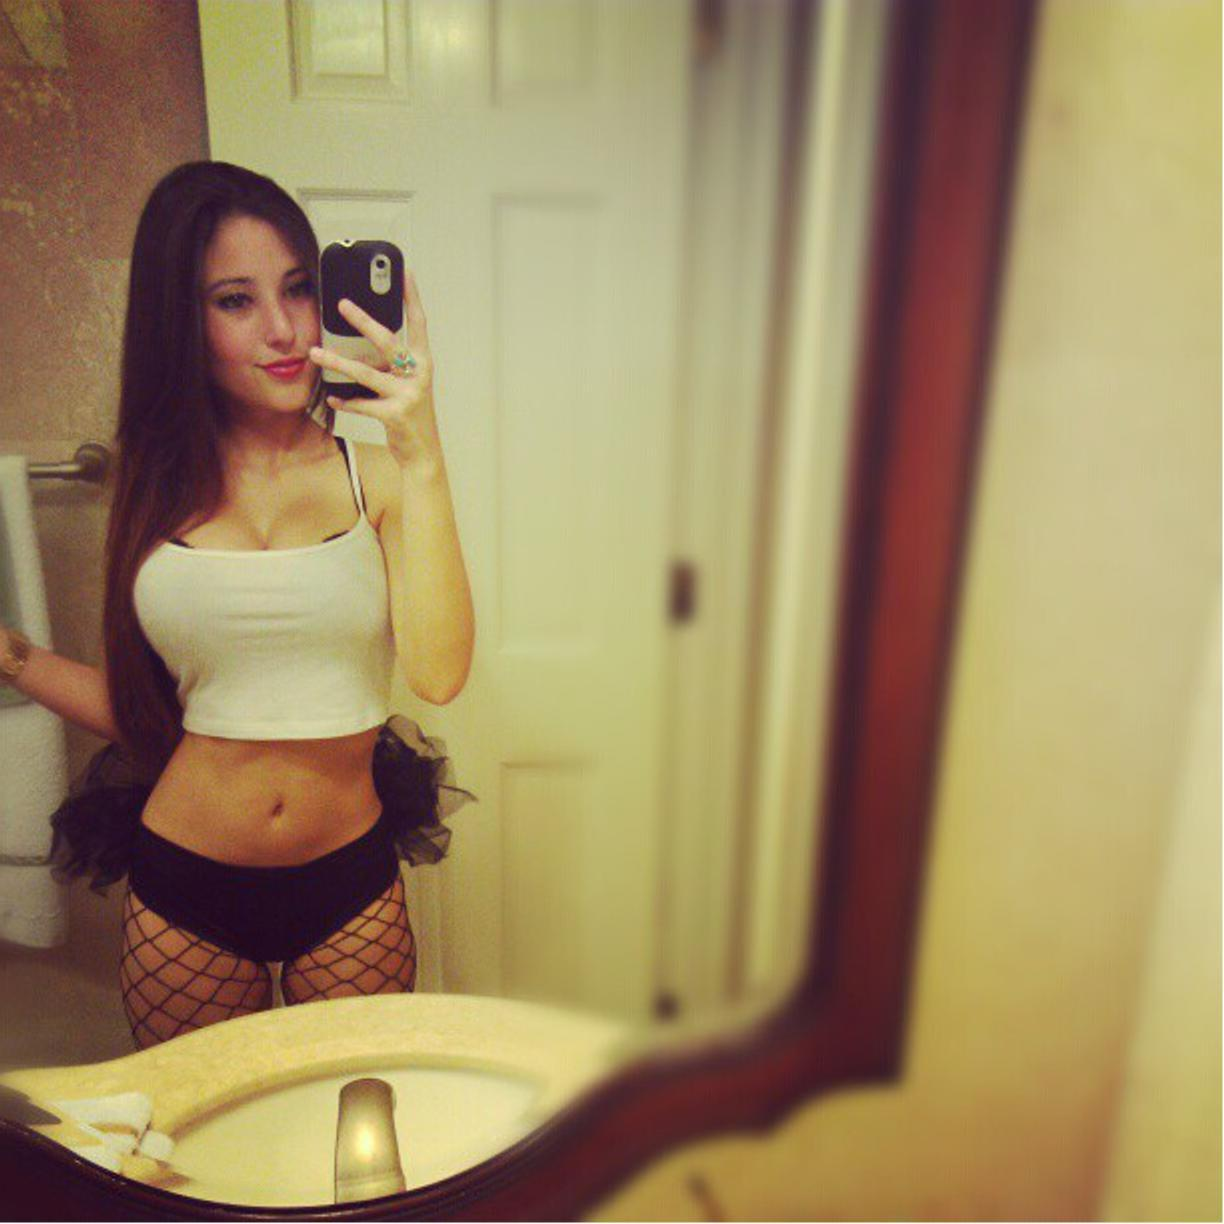 Angie Varona Naked Pictures